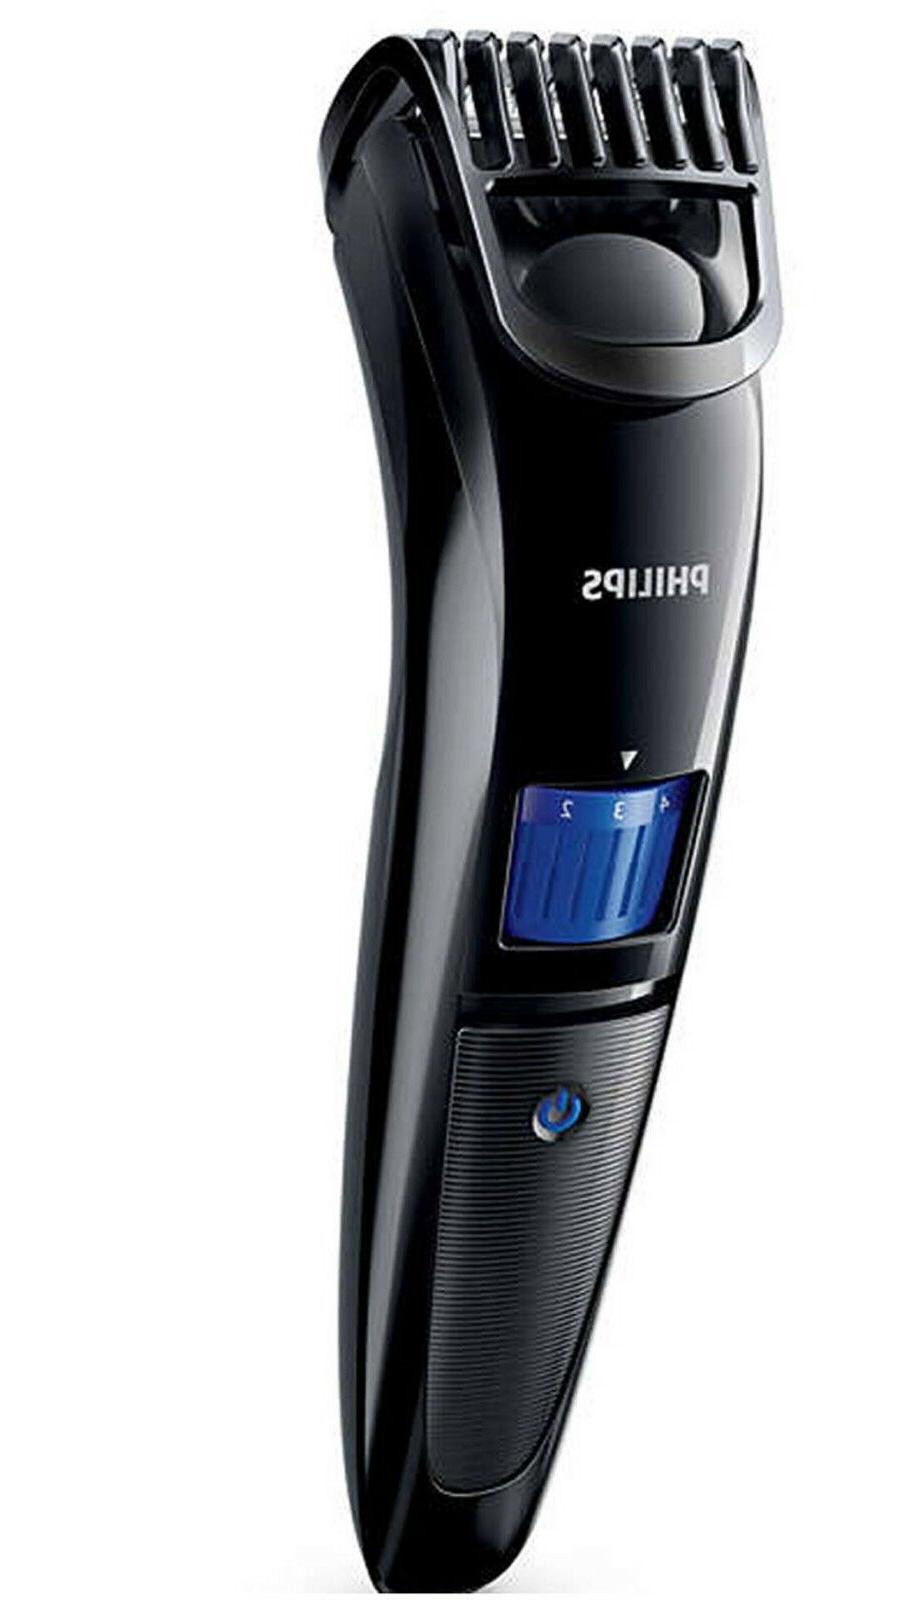 Philips Norelco BeardTrimmer 3100 with adjustable length set